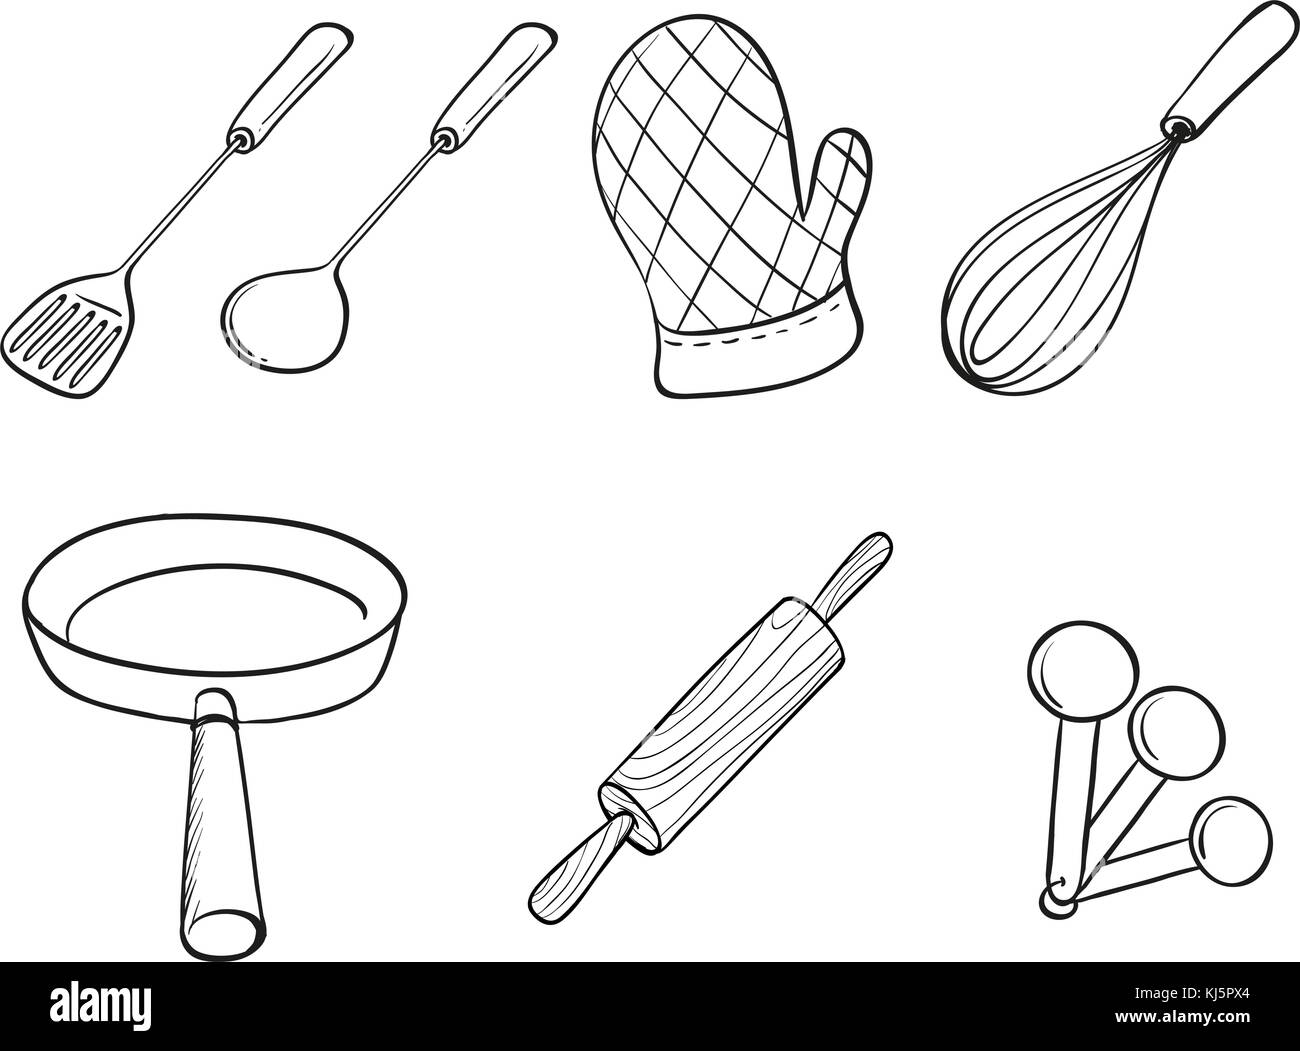 Illustration of the silhouettes of kitchen utensils on a white background - Stock Vector